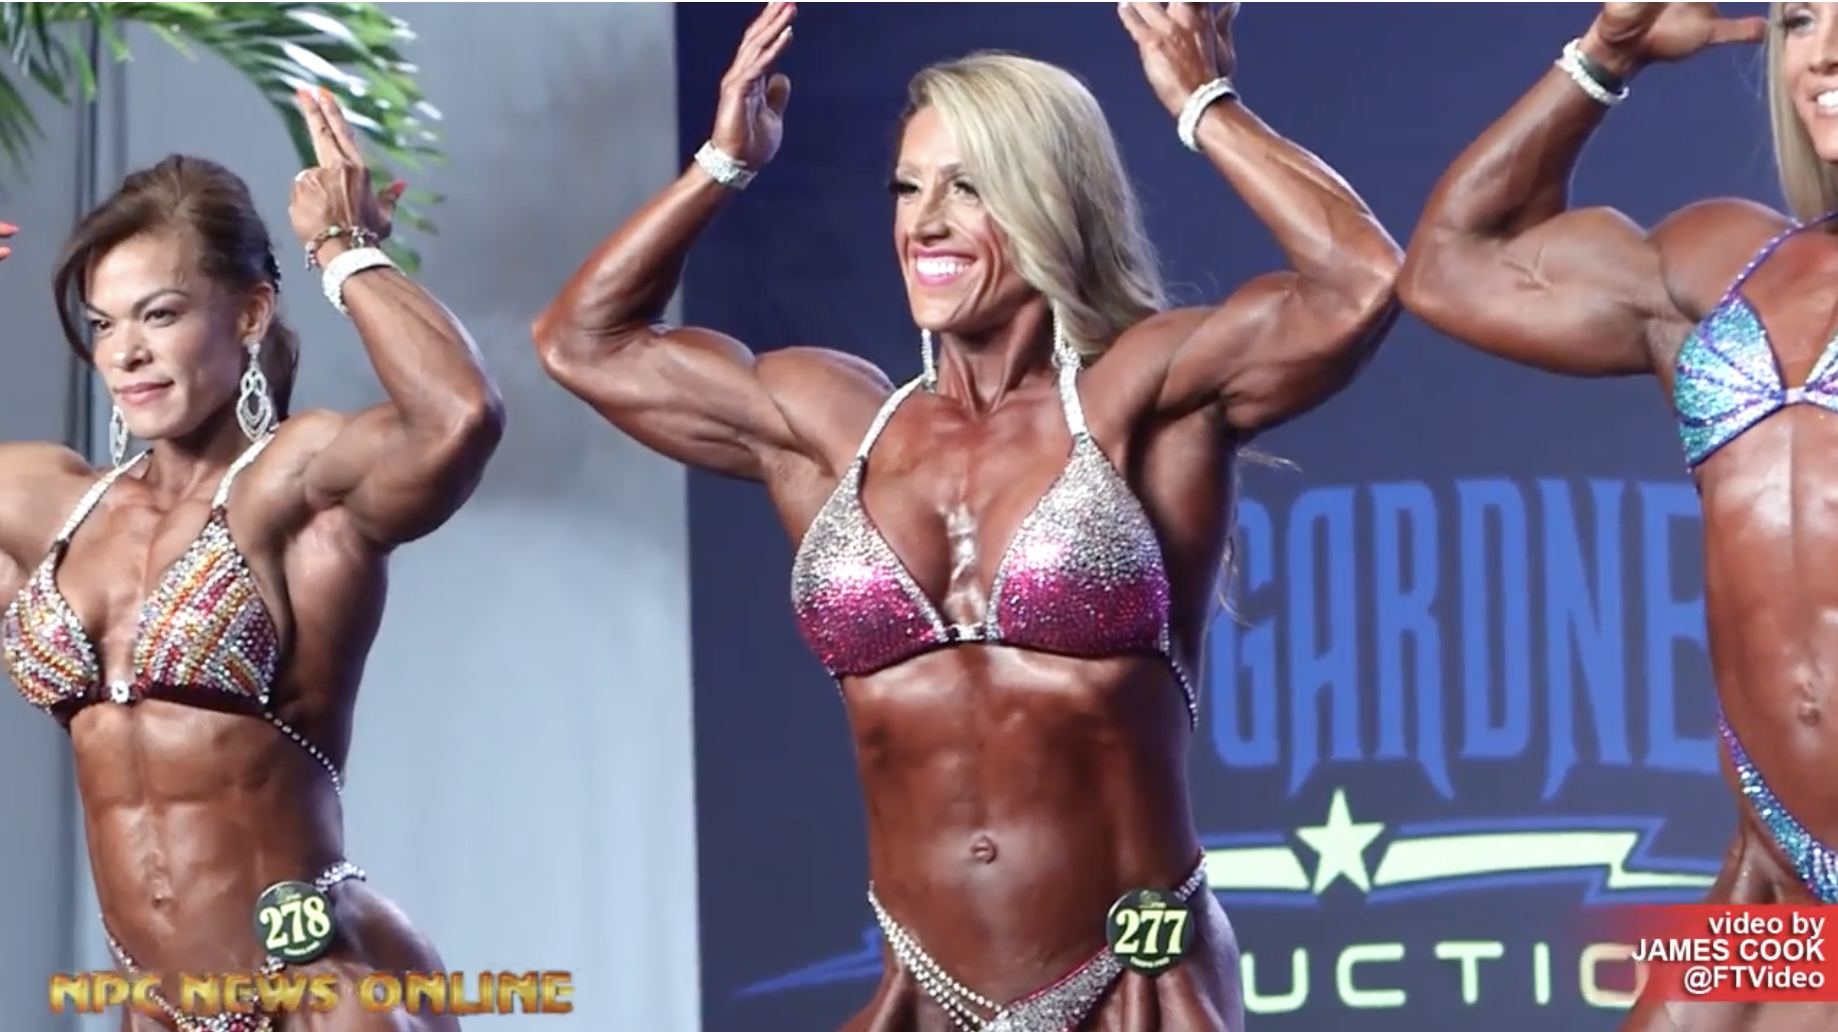 2019 IFBB Tampa Pro Women's Physique Show Video